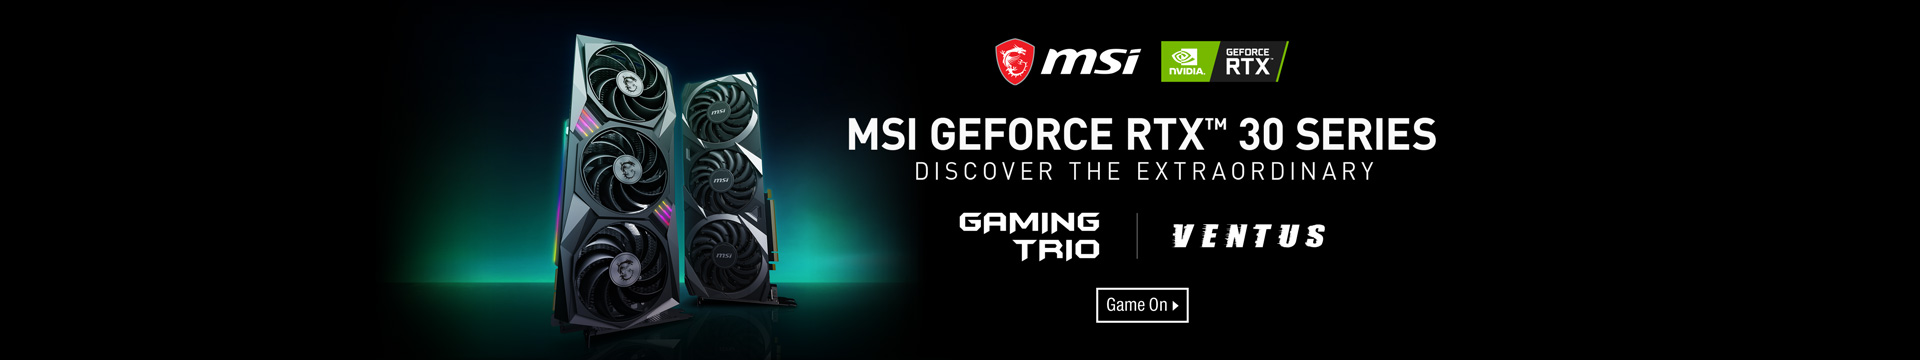 MSI GEFORCE RTX™ 30 SERIES